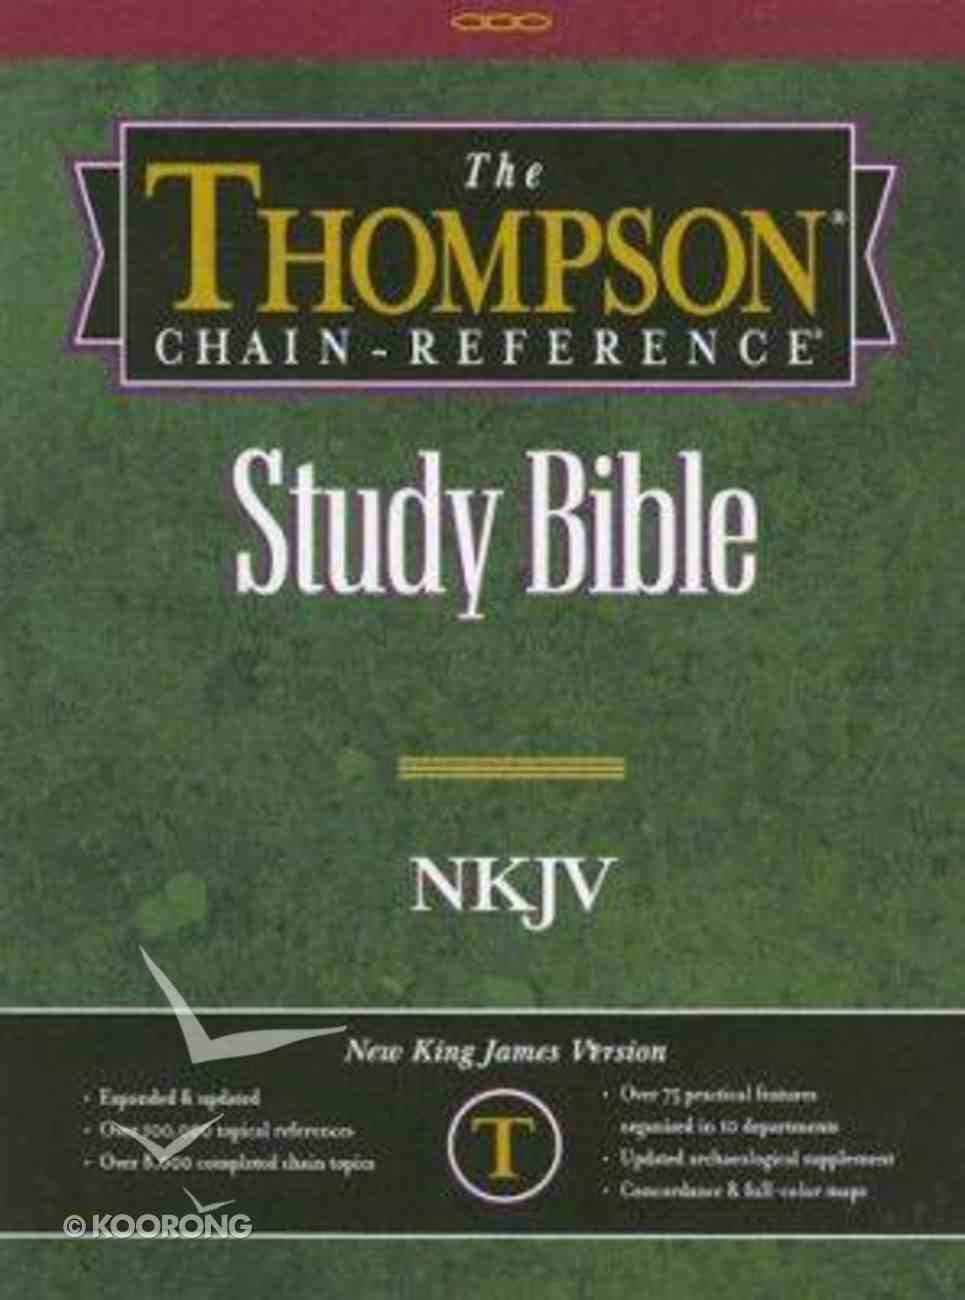 NKJV Thompson Chain Reference Gray Skateboard Index Imitation Leather